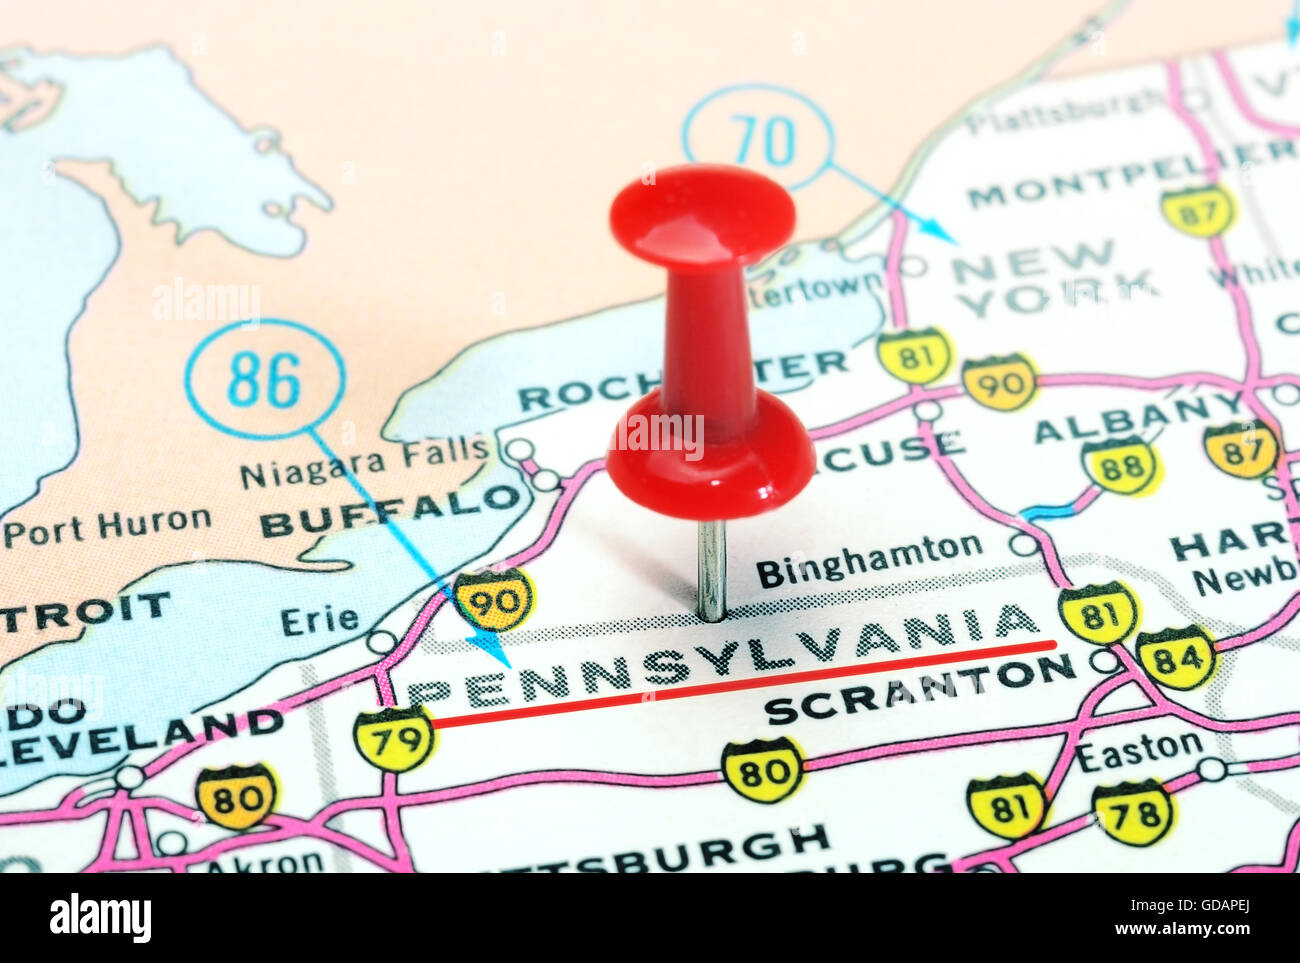 Pennsylvania In Usa Map.Close Up Of Pennsylvania State Usa Map With Red Pin Travel Stock